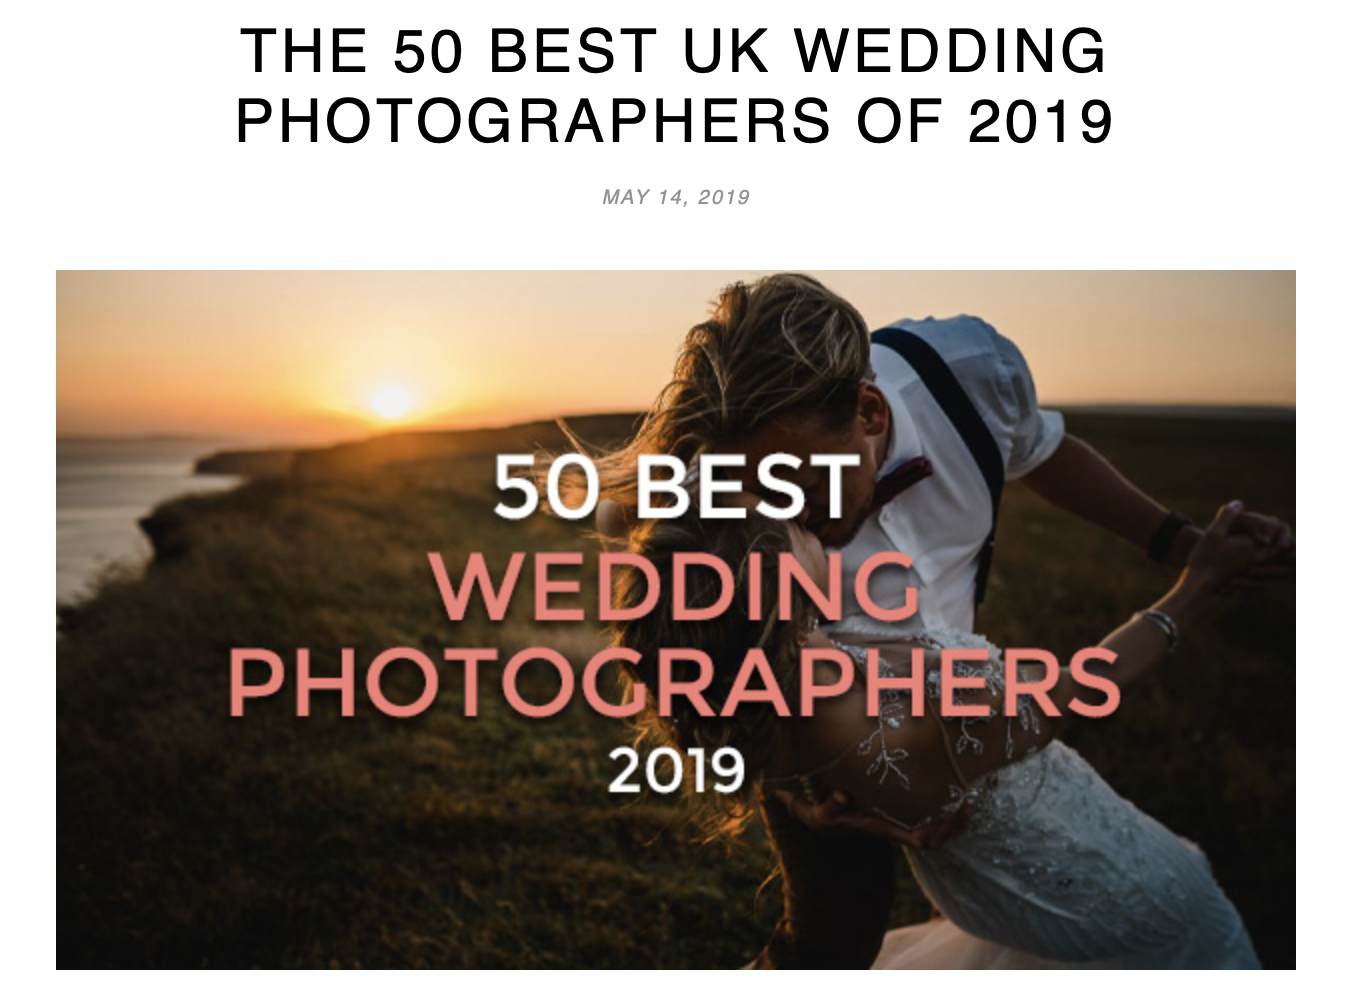 Screenshot 2019 05 14 at 20.33.36 - THE 50 BEST UK WEDDING PHOTOGRAPHERS OF 2019